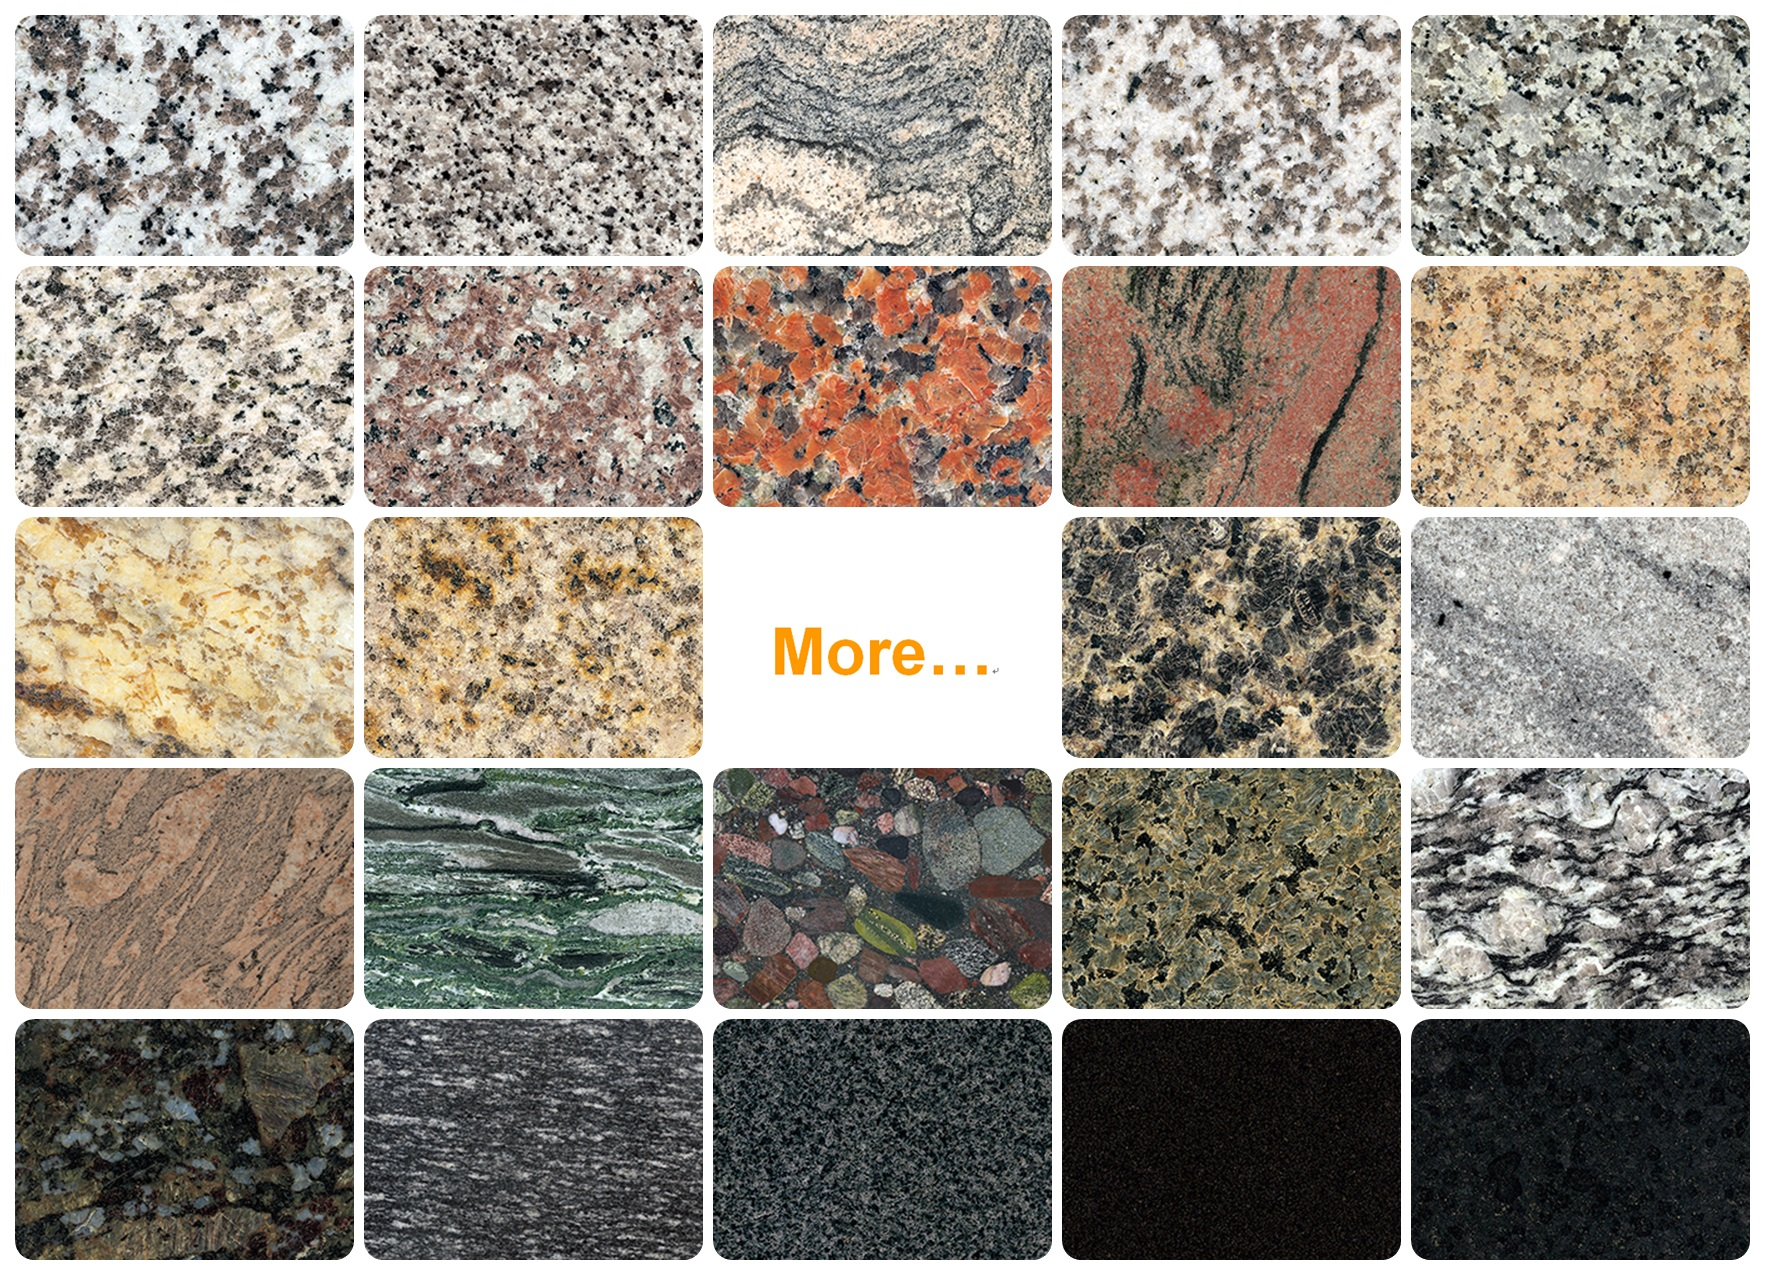 Own Quarry Chinese Polished Granite tile at Good price